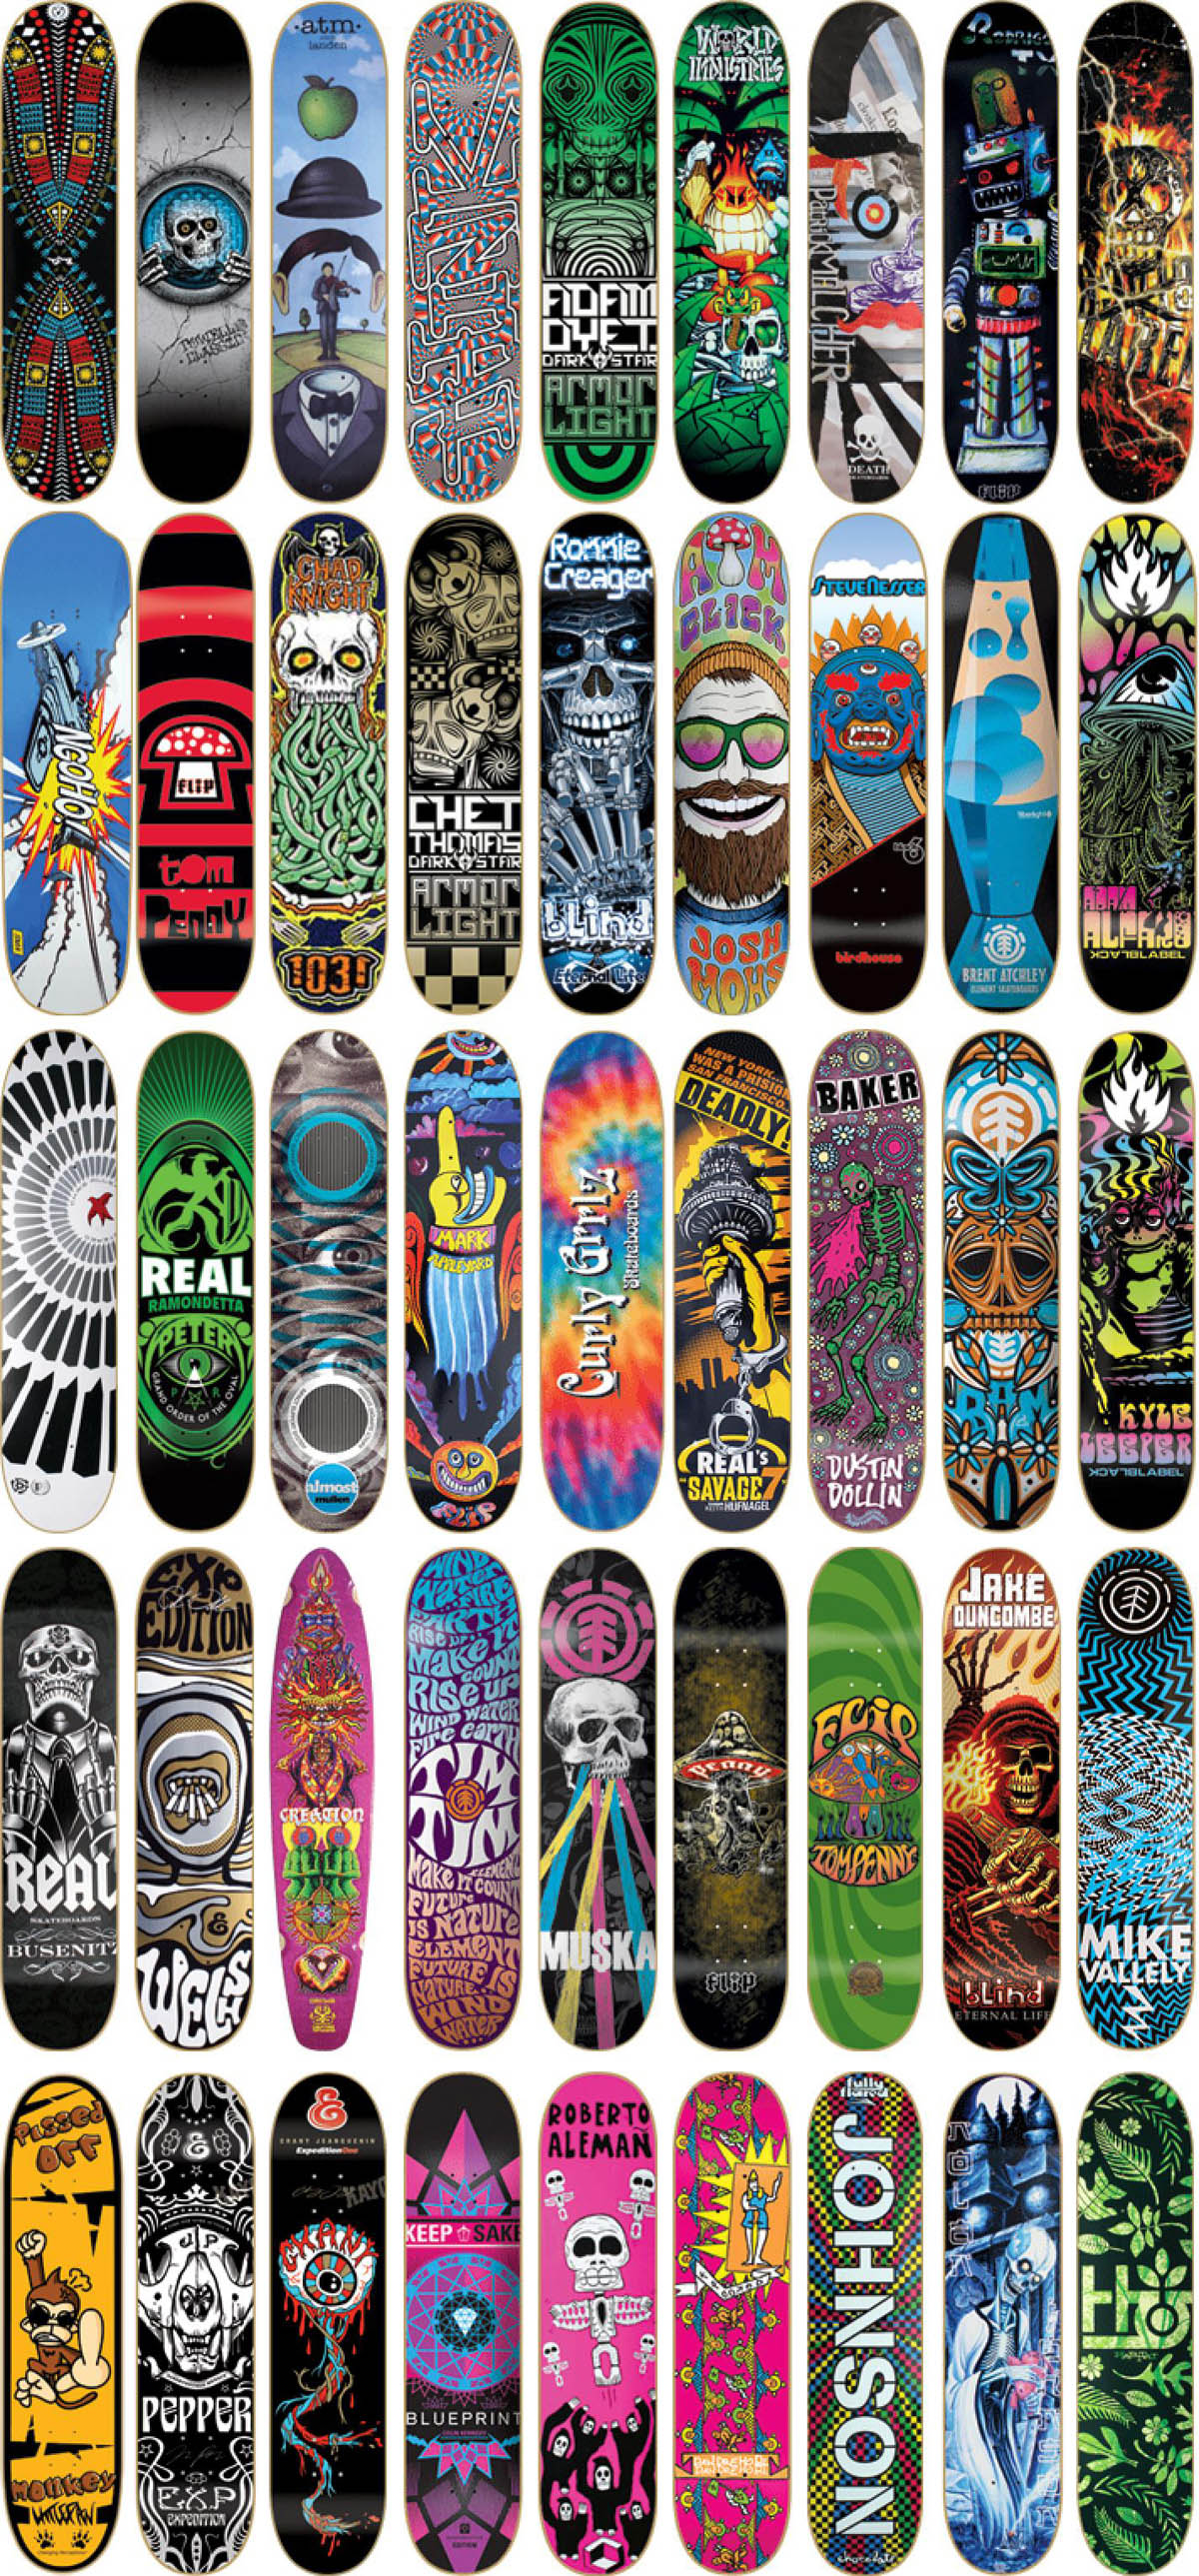 skateboarder dating website Online dating so another not so secret aspect of my life is my dating life you'd think it was secret, because to be honest, it's been pretty much non-existent for the last couple of years.